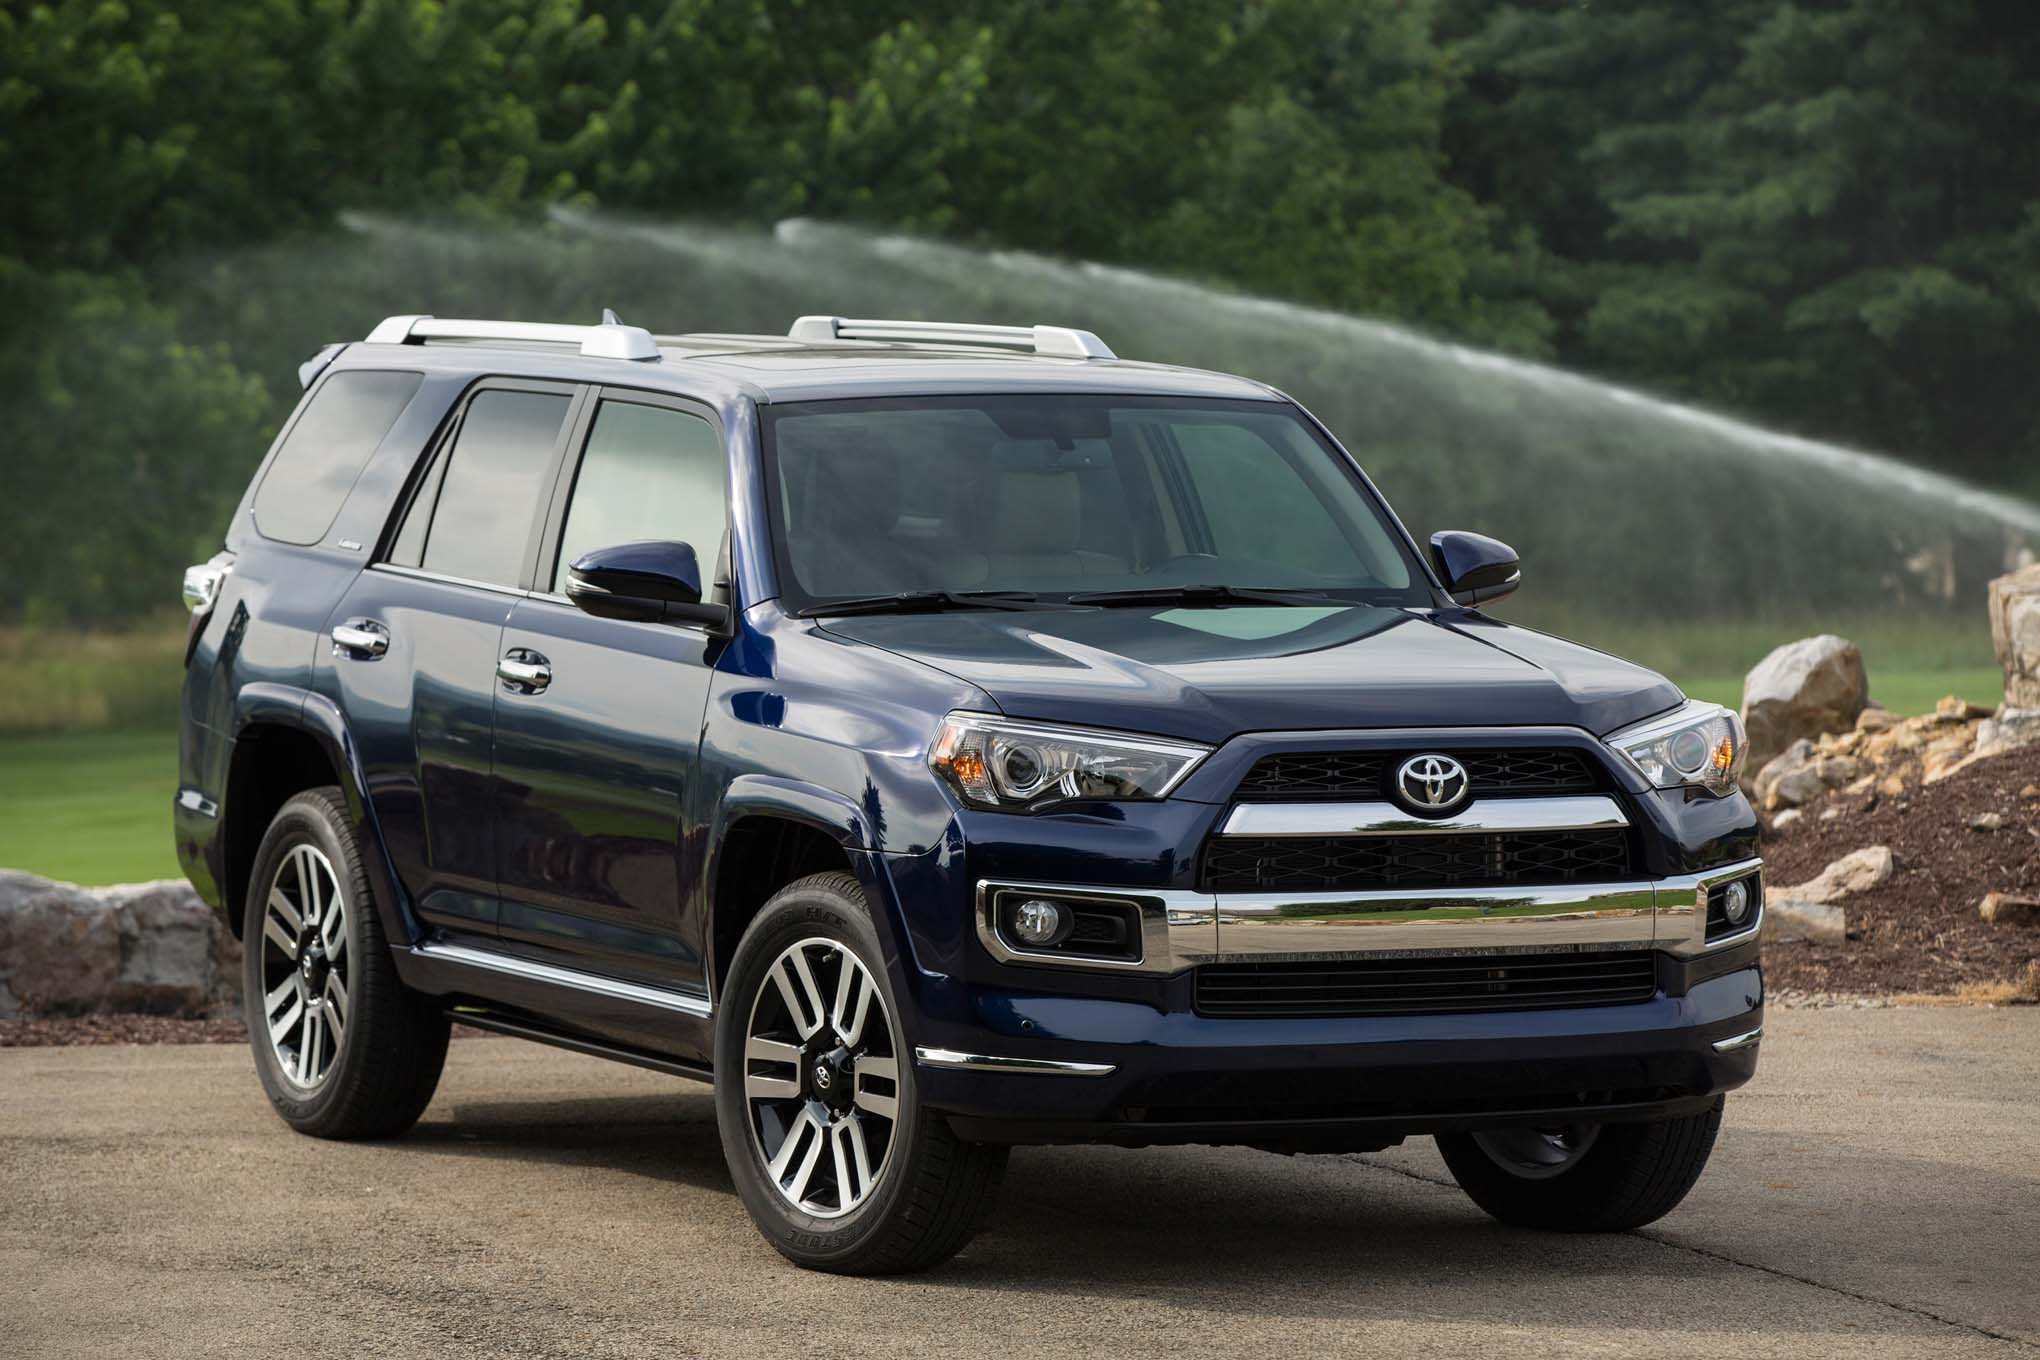 2019 toyota 4runner Redesign & Update